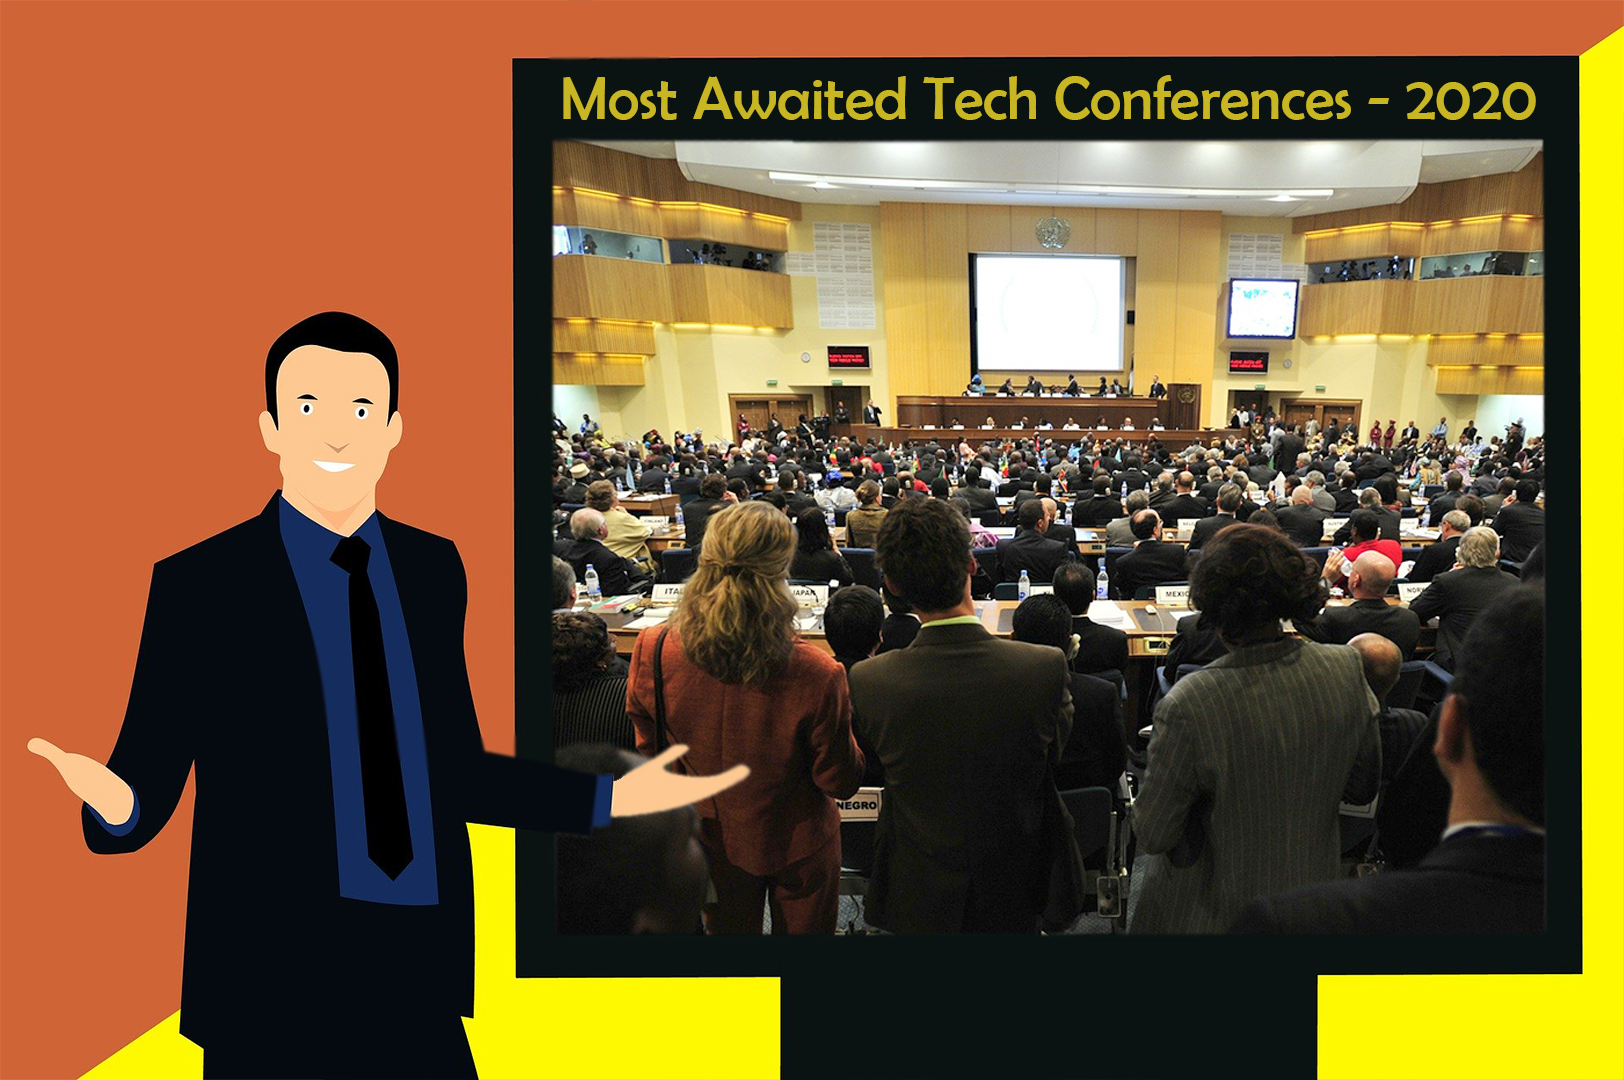 Most Awaited Tech Conferences - 2020